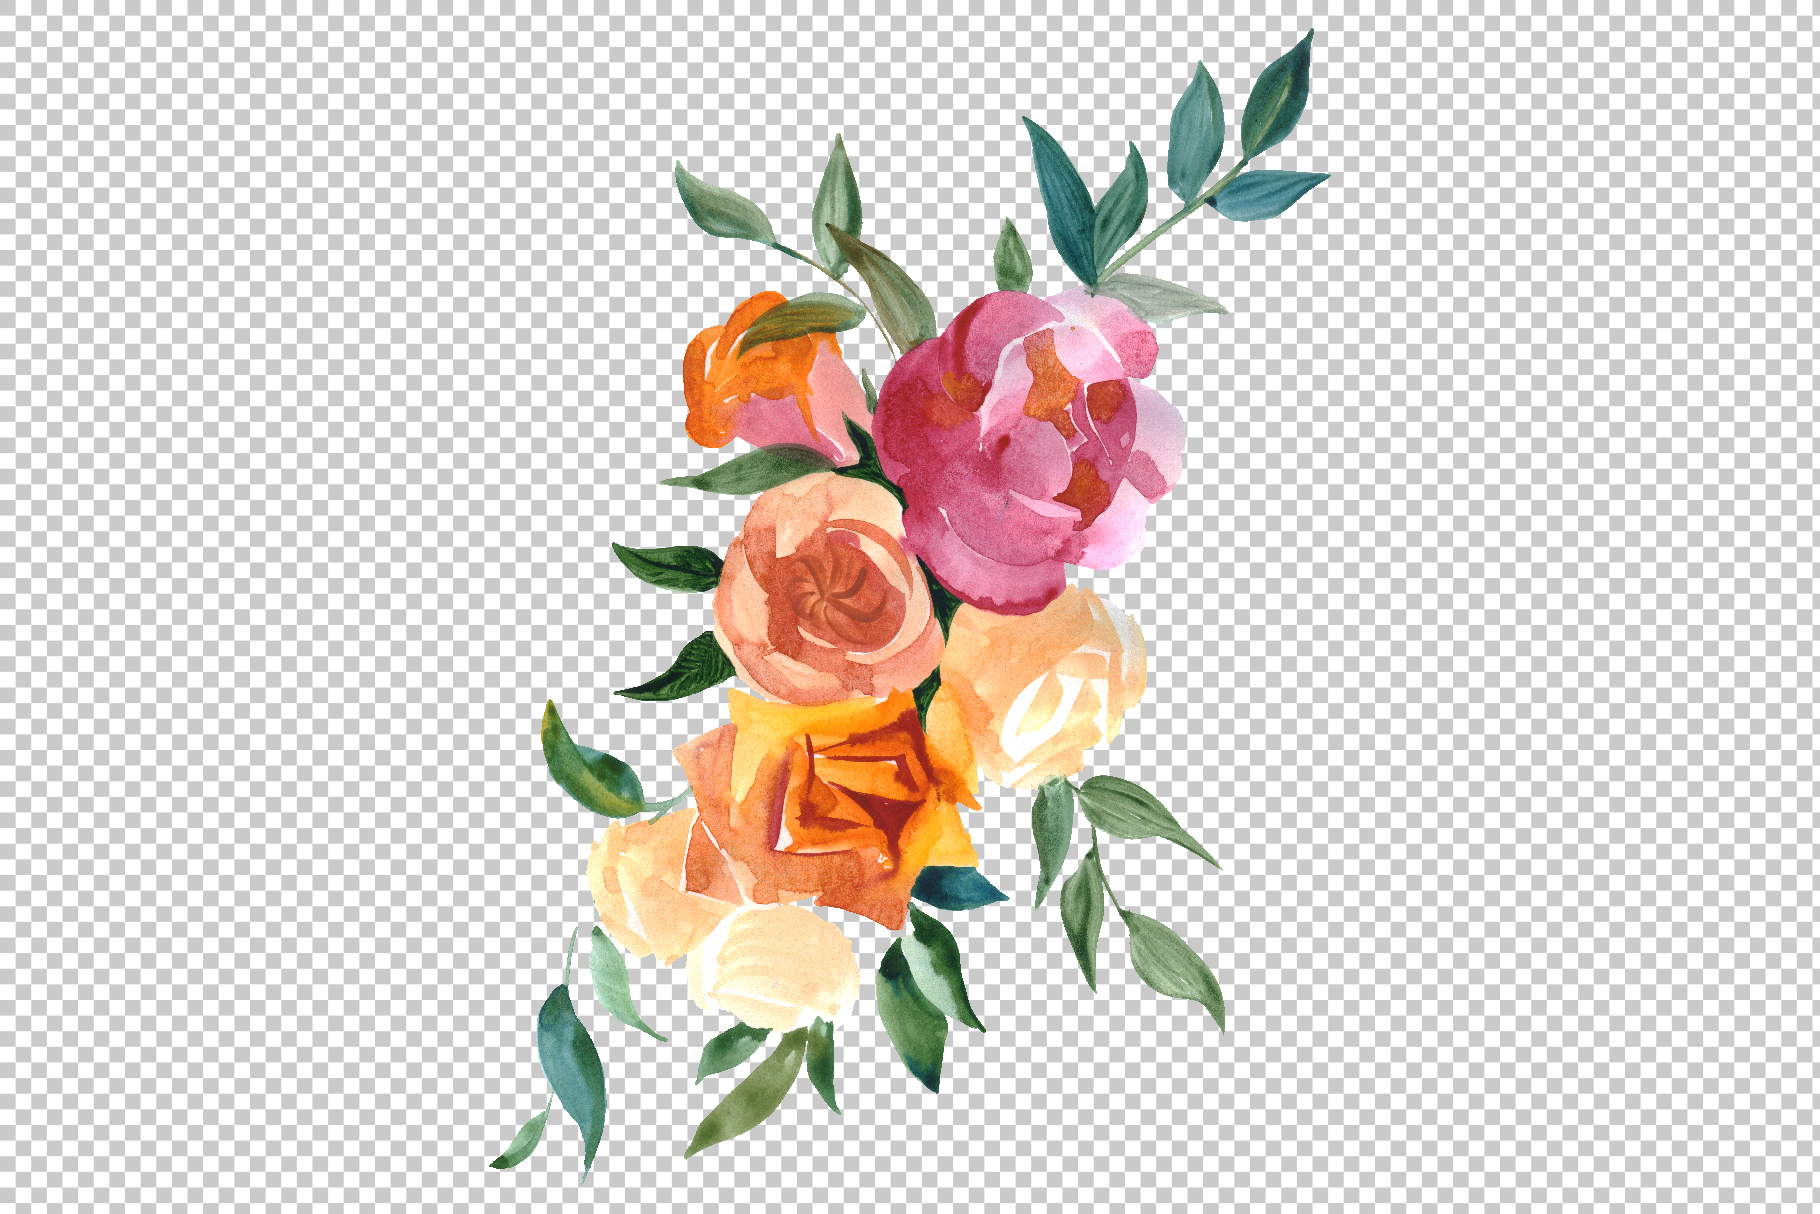 Bouquets with wildflowers, Roses, leaves Watercolor png example image 6